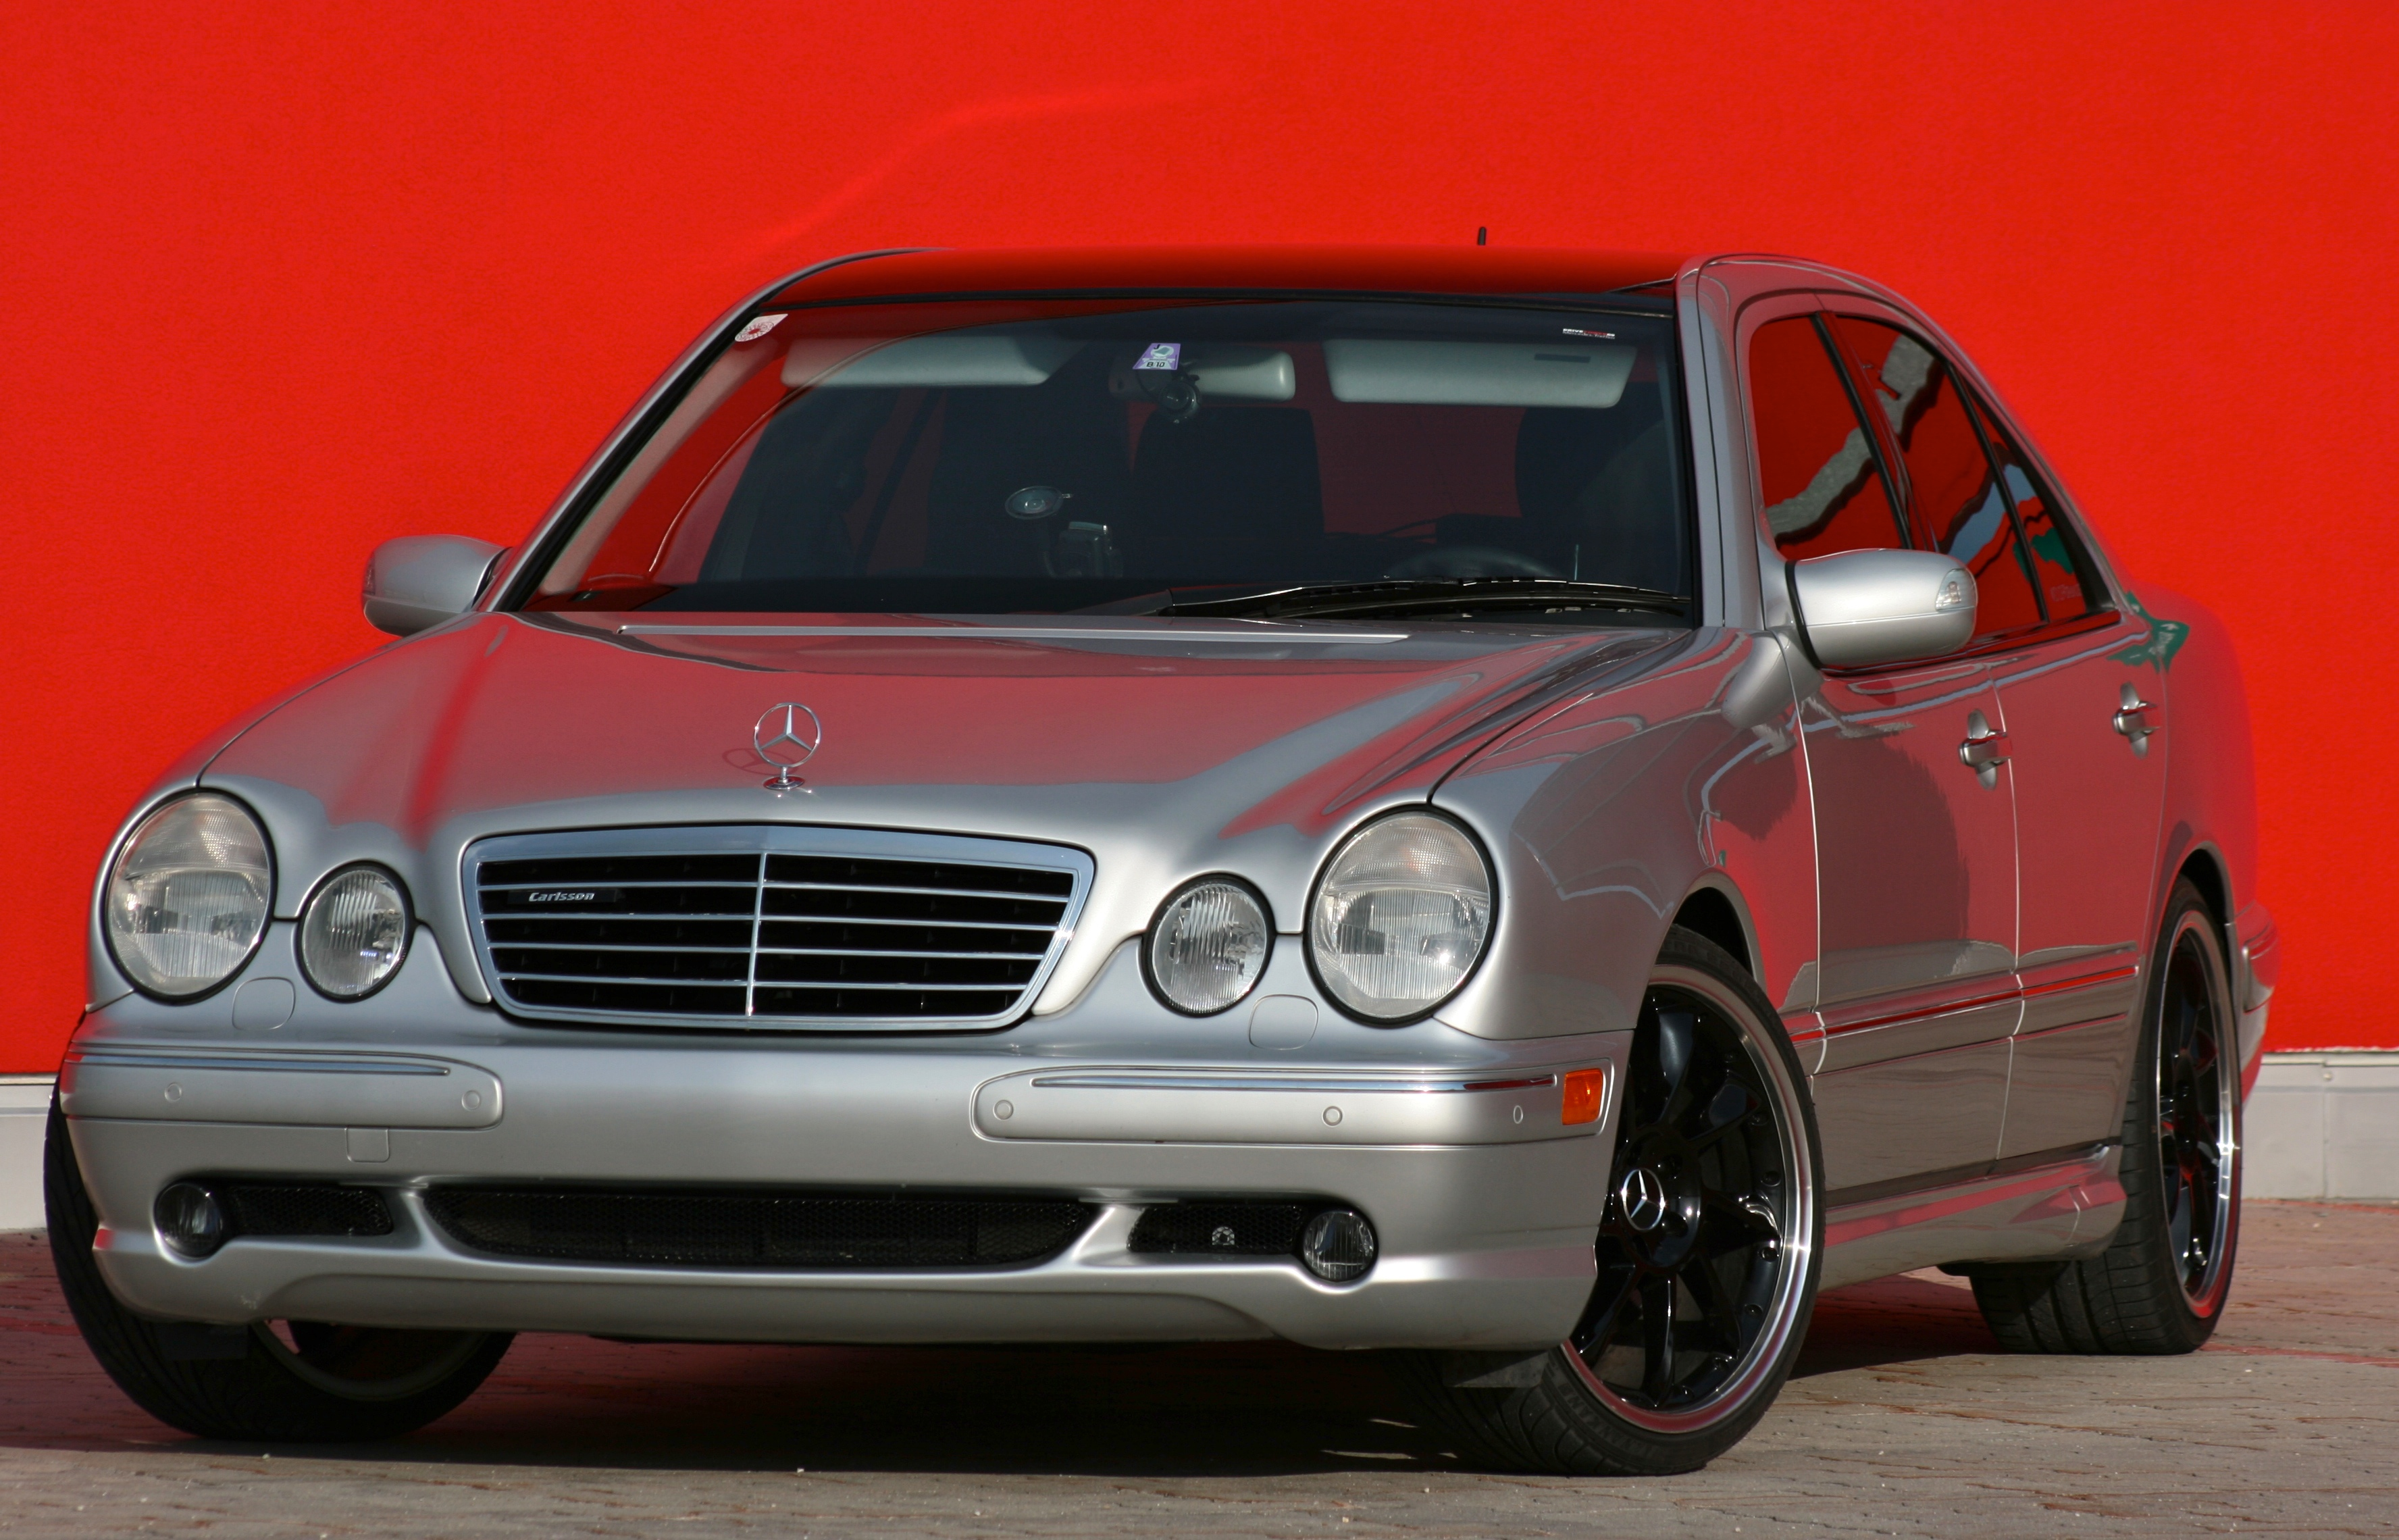 Mercedes w210 tuning 2 tuning cars - Mercedes W210 By Austrianpsycho Via Flickr Mercedes E Class W210 Pinterest Mercedes Benz Cars And Peugeot